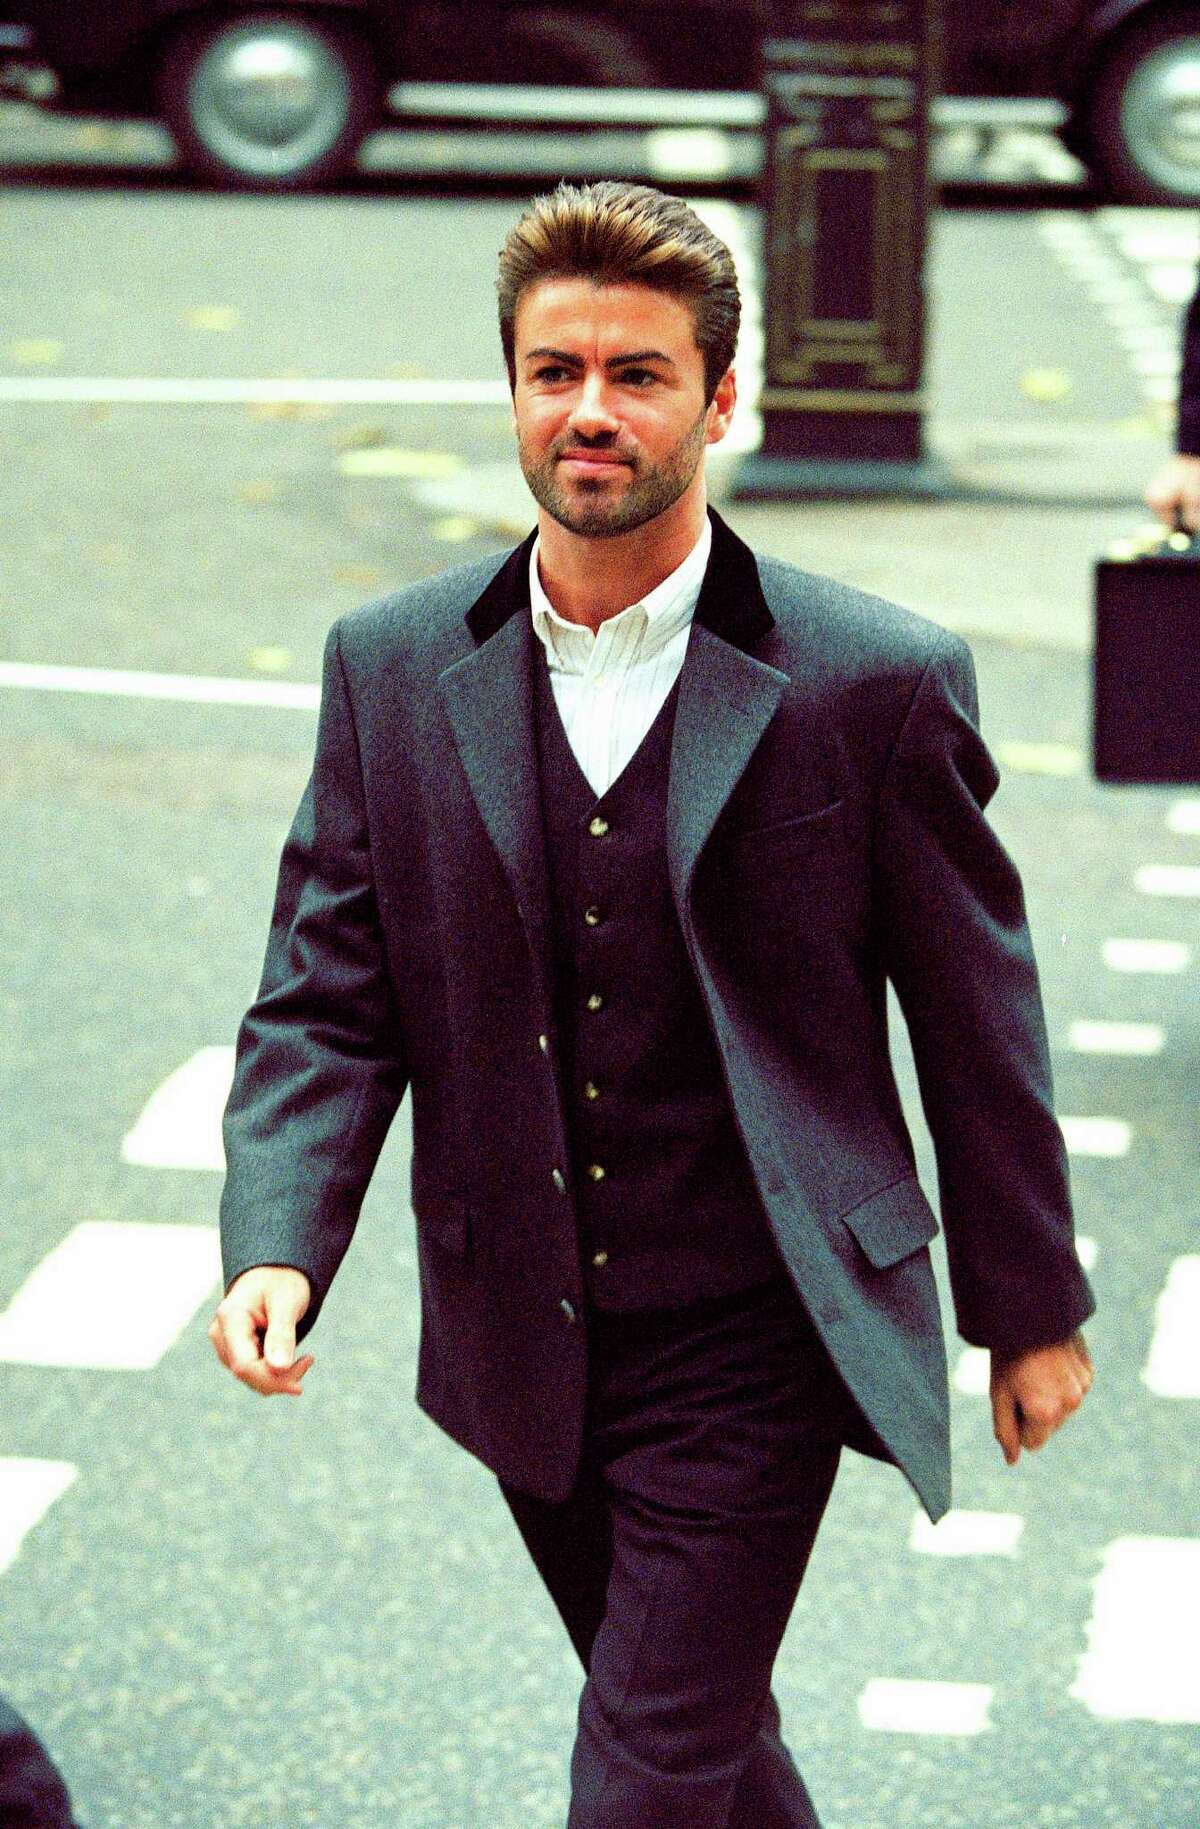 FILE - In this Oct. 28, 1993, file photo, pop star George Michael arrives to give evidence at the Royal Courts of Justice in London. Michael was petitioning the court to release him from his contract with Sony Music Entertainment (UK) Ltd. Michael, who rocketed to stardom with WHAM! and went on to enjoy a long and celebrated solo career lined with controversies, has died, his publicist said Sunday, Dec. 25, 2016. He was 53. (AP Photo/Alistair Grant) ORG XMIT: NYGM106